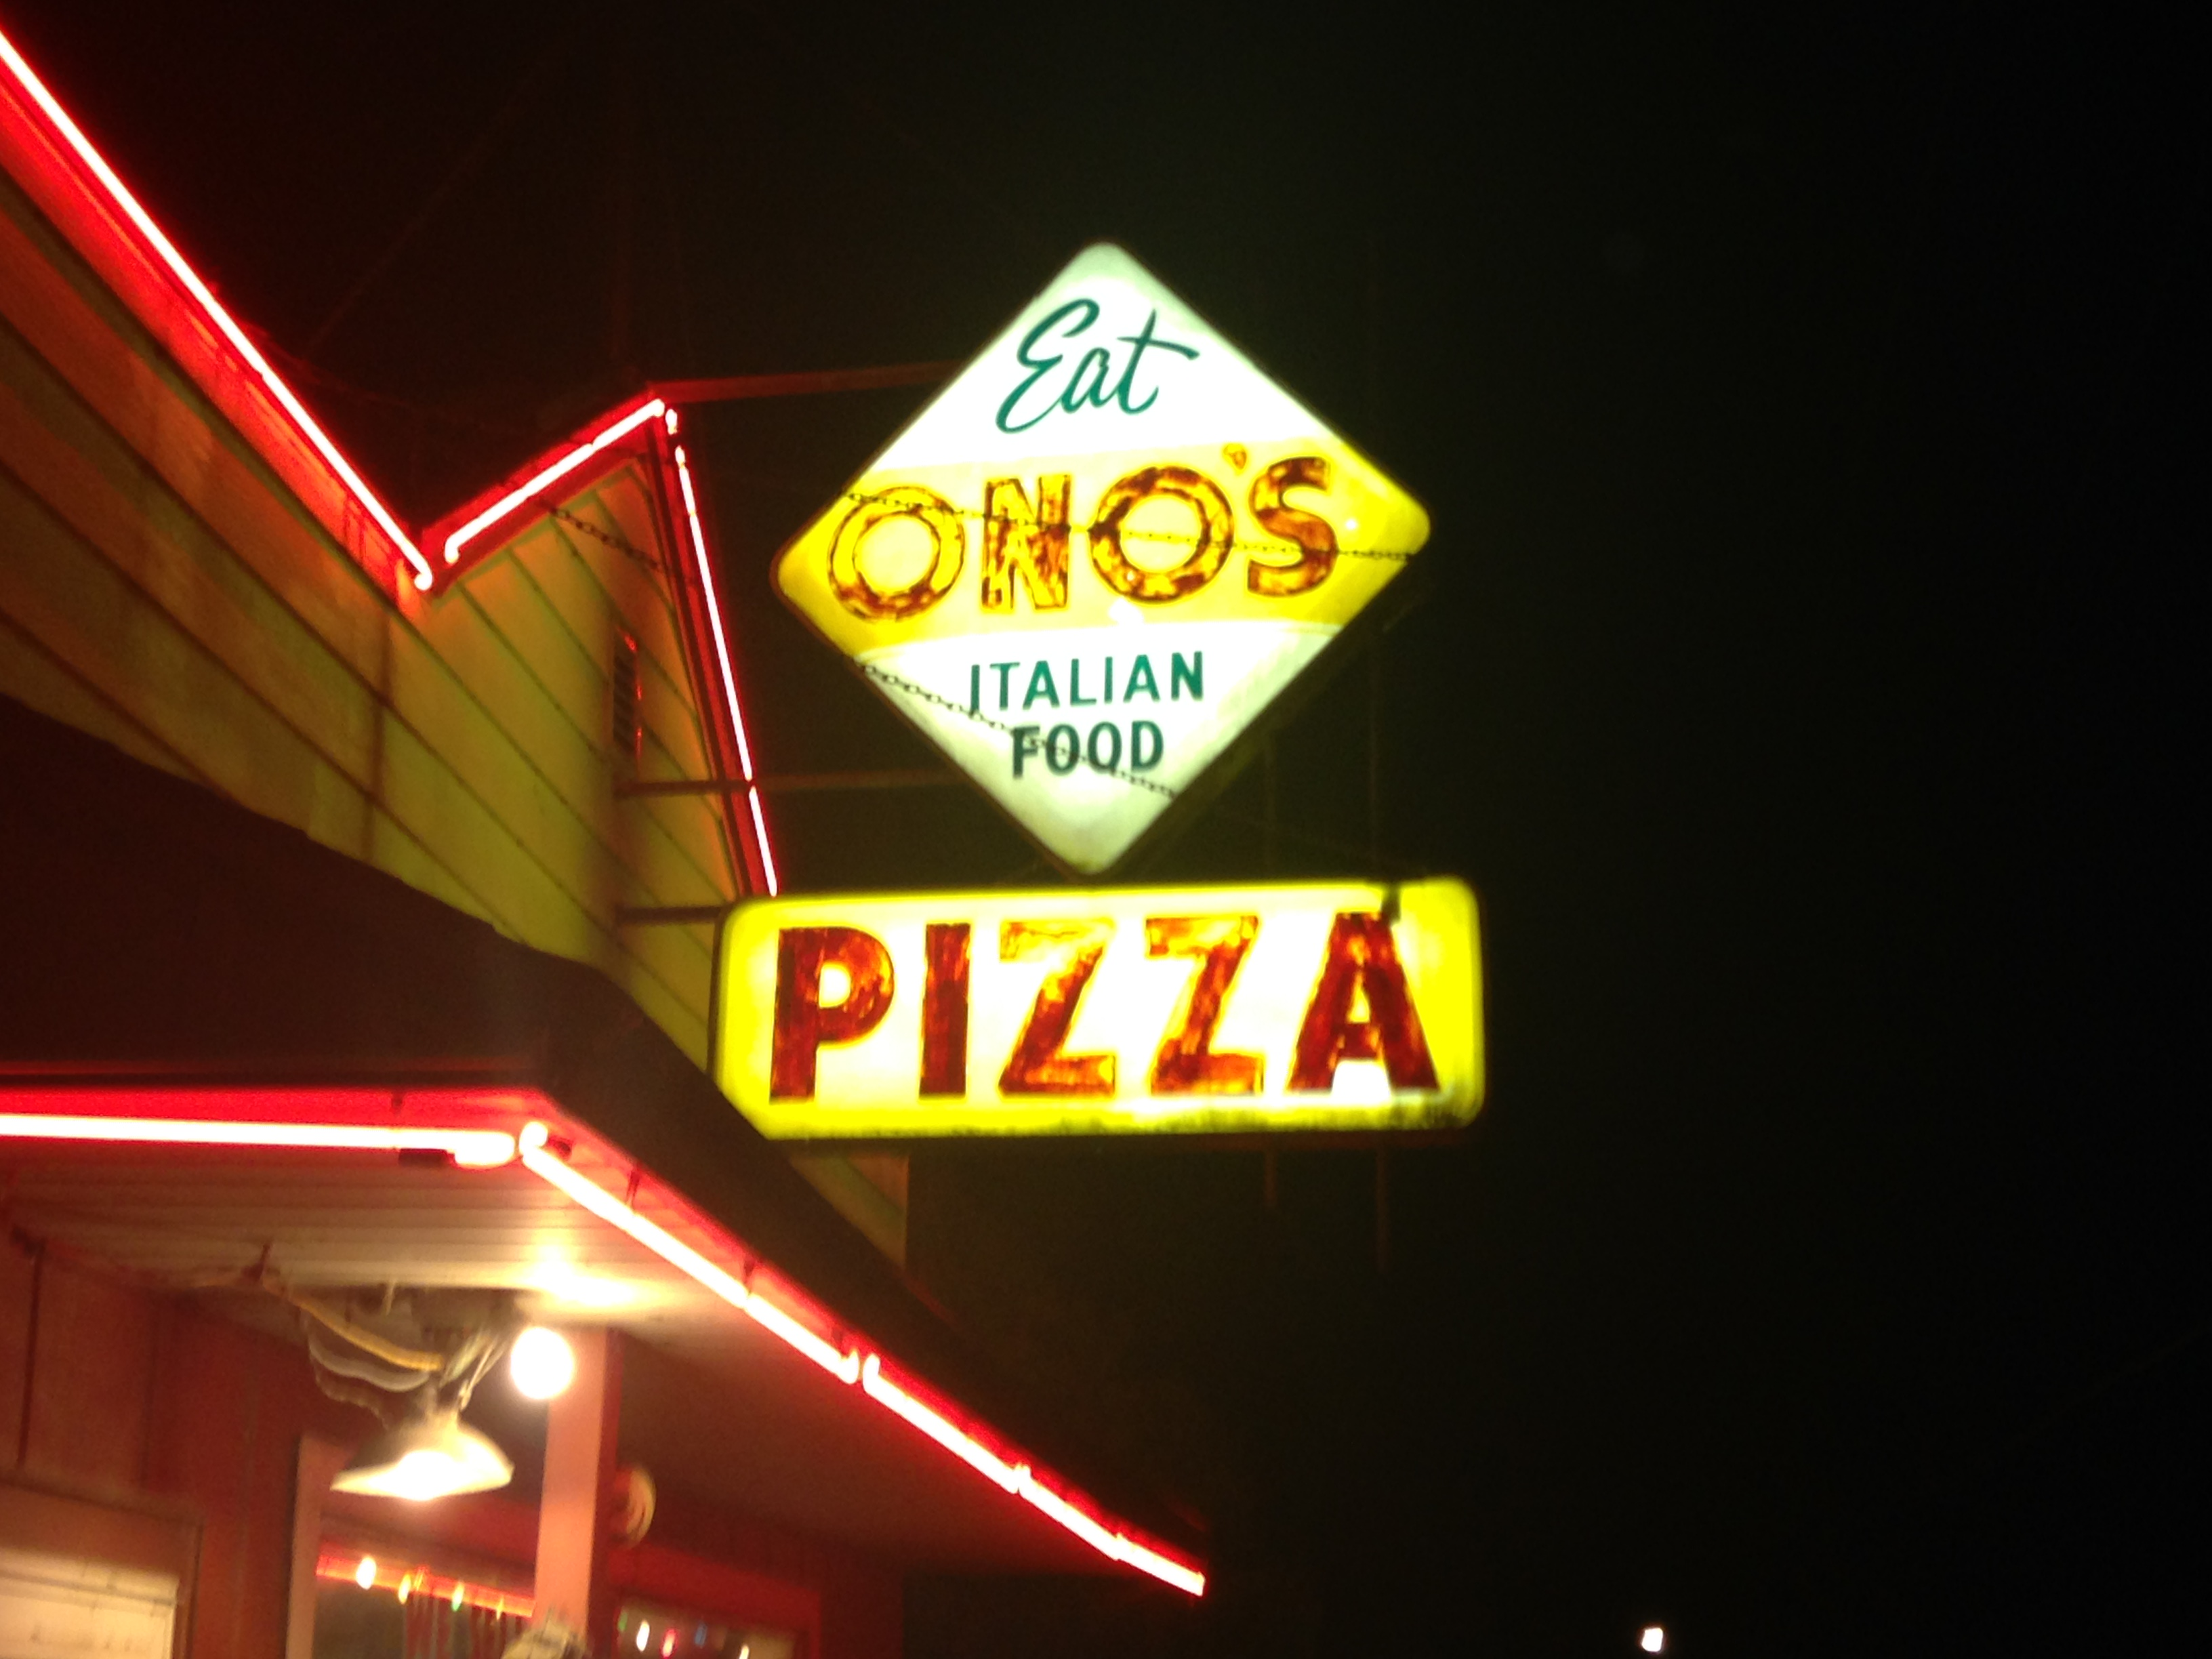 Eat Ono's Italian Food Pizza - Sign and Neon at Night - December 20, 2014